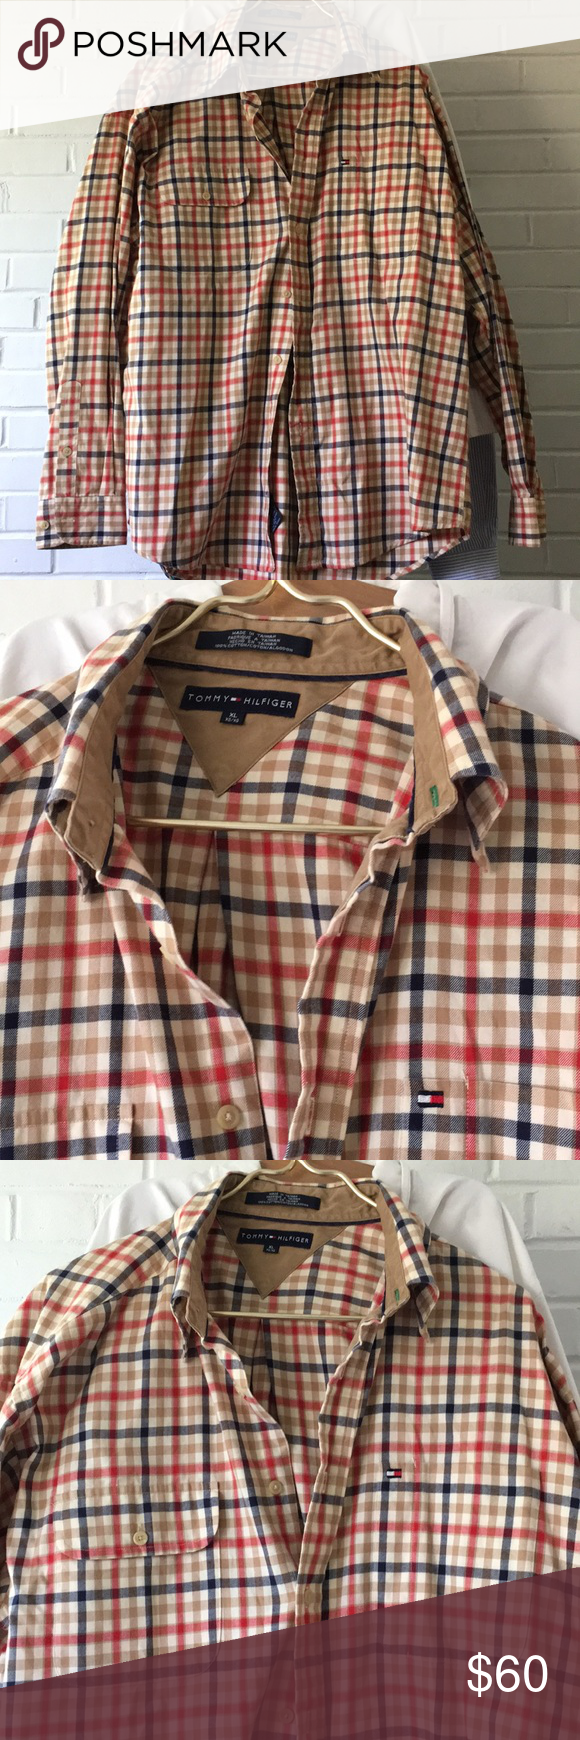 d599a3eeb Vintage Tommy Hilfiger Nova Plaid Cotton Shirt XL Awesome vintage Tommy  plaid Cotton shirt. Awesome Colors and condition. Soft yet Sturdy cotton  similar to ...